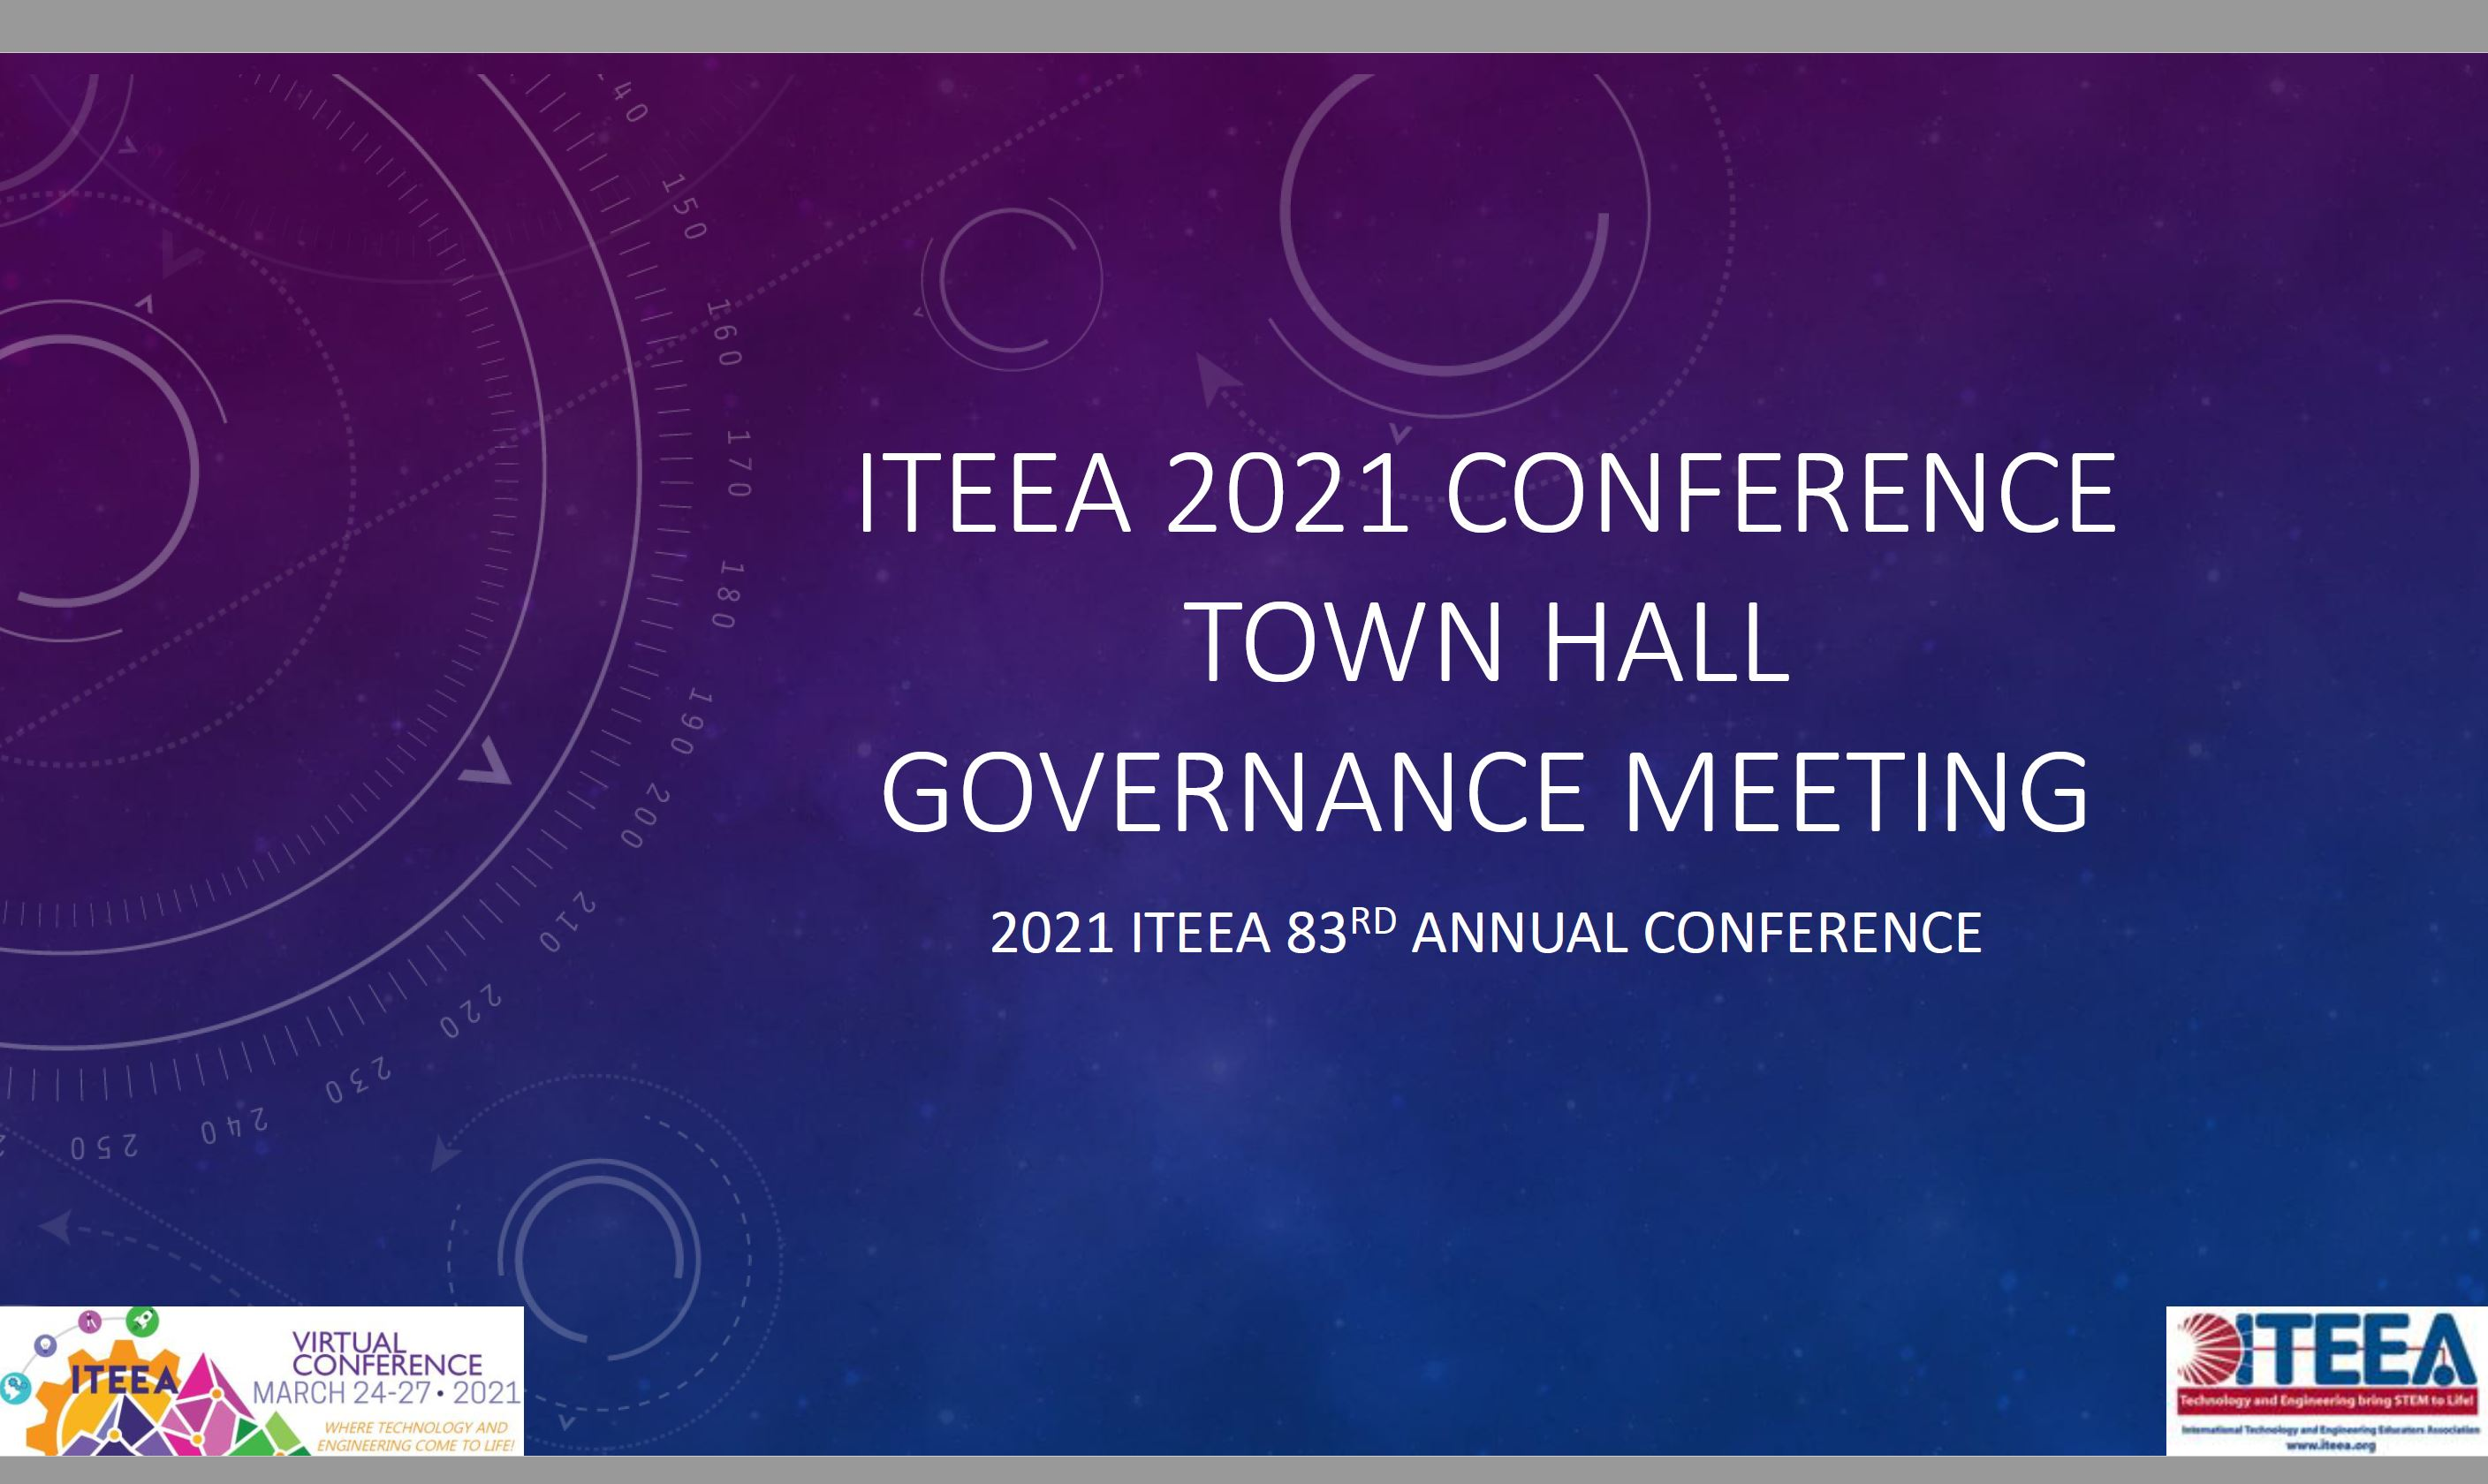 Volunteers Needed for ITEEA Committees and Task Forces